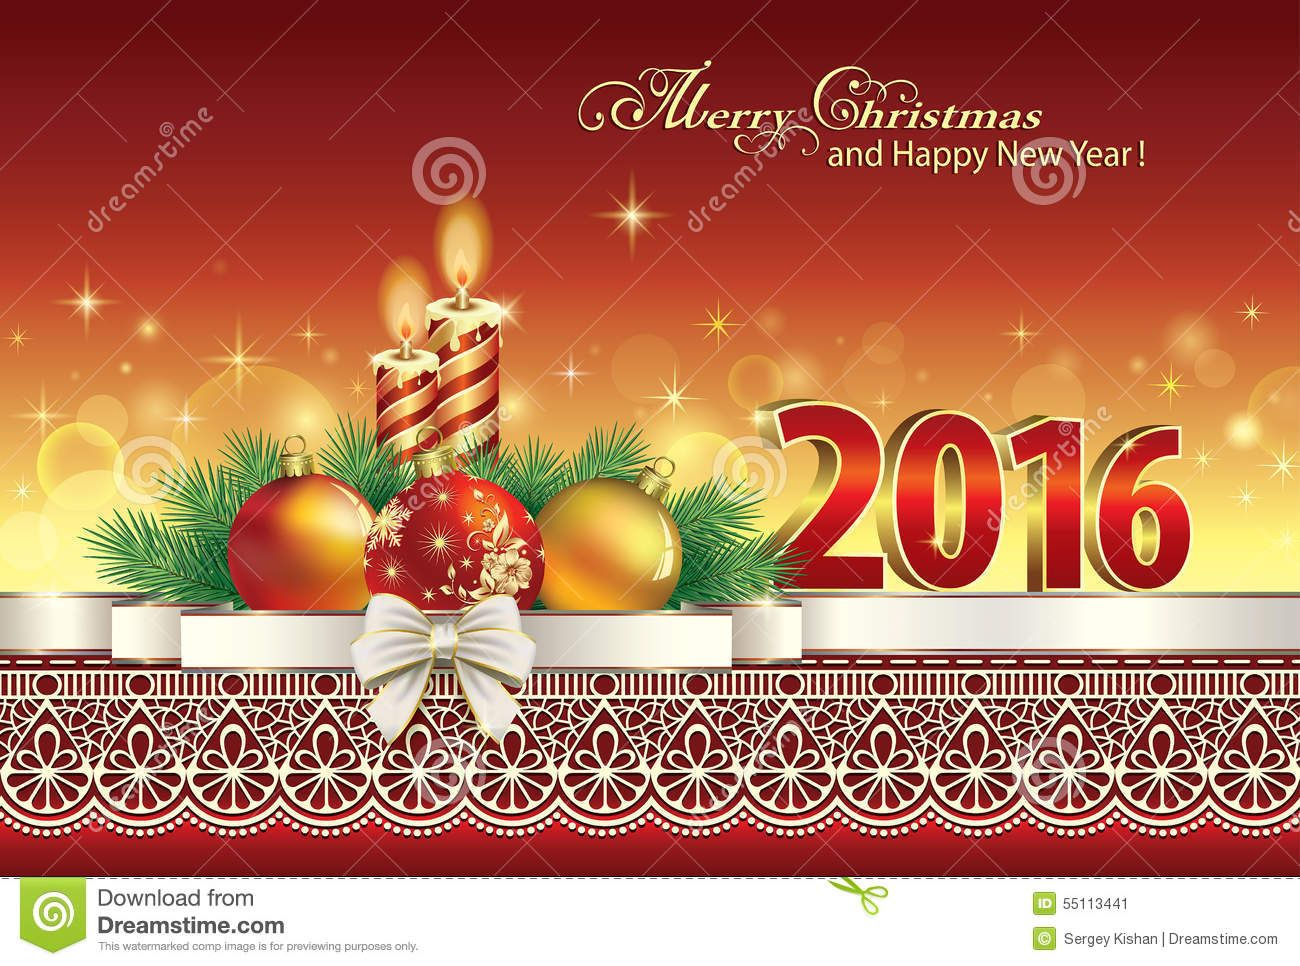 Happy new year 2016 webdesign pinterest year 2016 xmas best merry christmas 2016 wishesquotes and greetings kristyandbryce Images